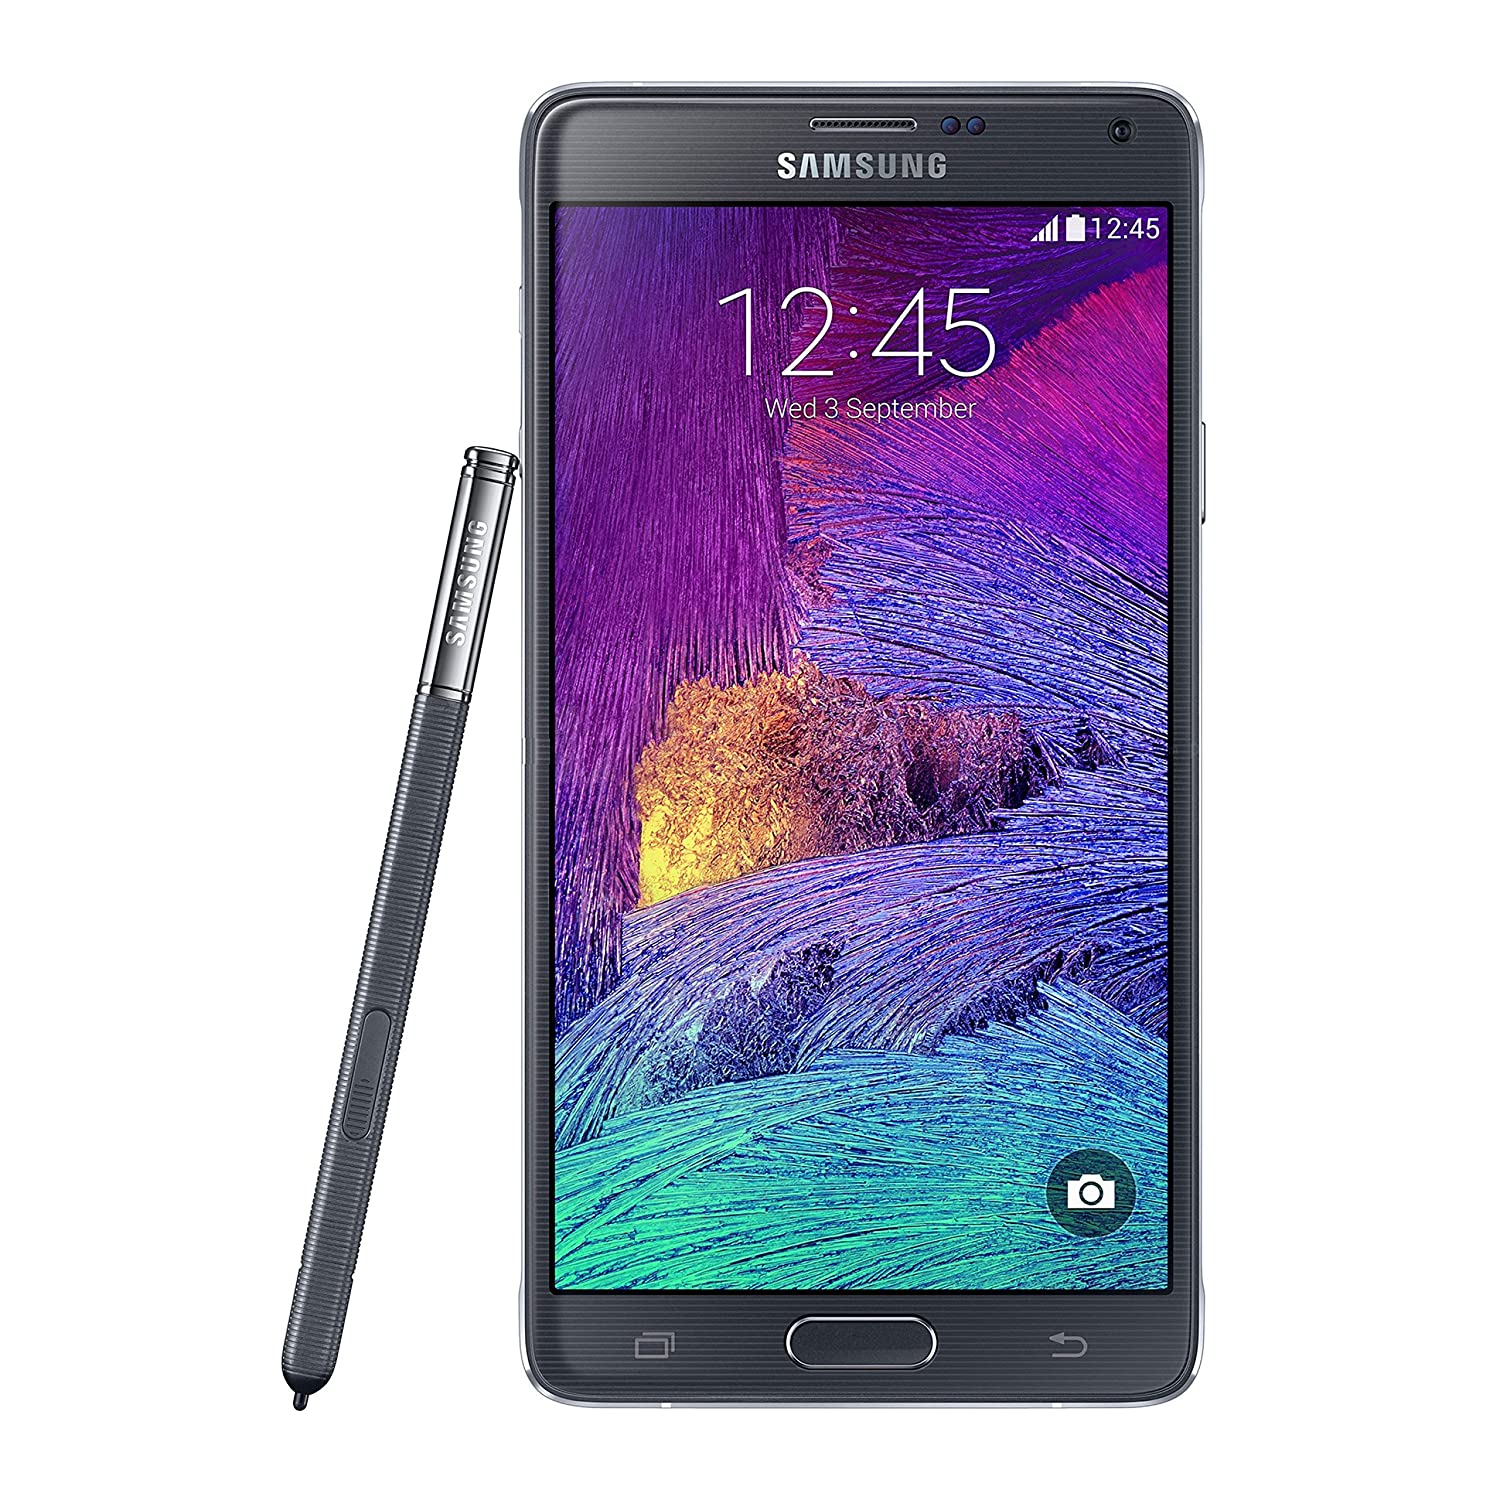 Samsung Galaxy Note 4, Charcoal Black 32GB (AT&T)